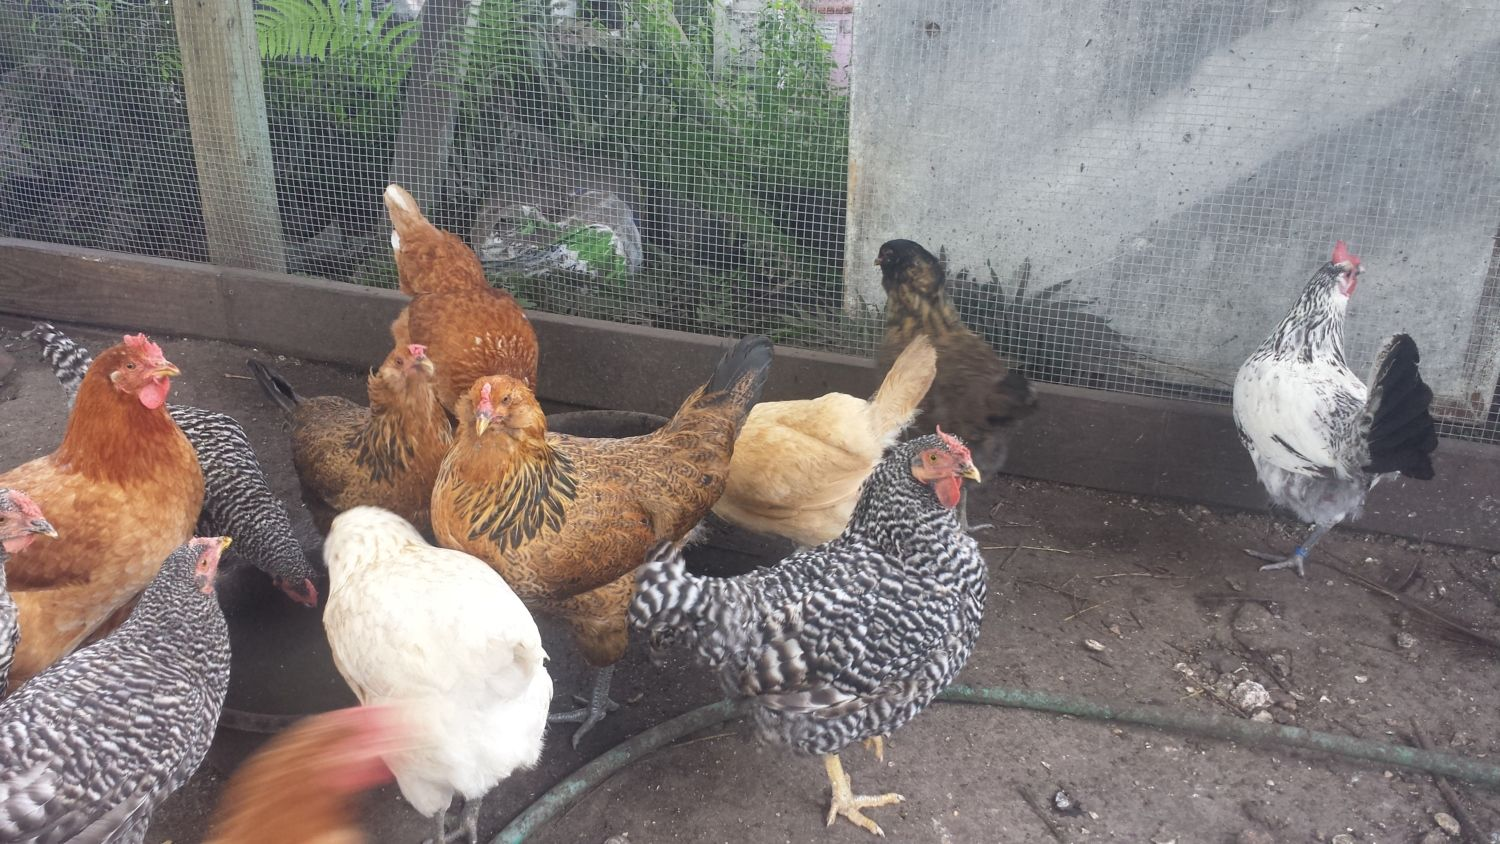 Flock 4 - most of the hens are about 1 year old.  No roosters in this flock.